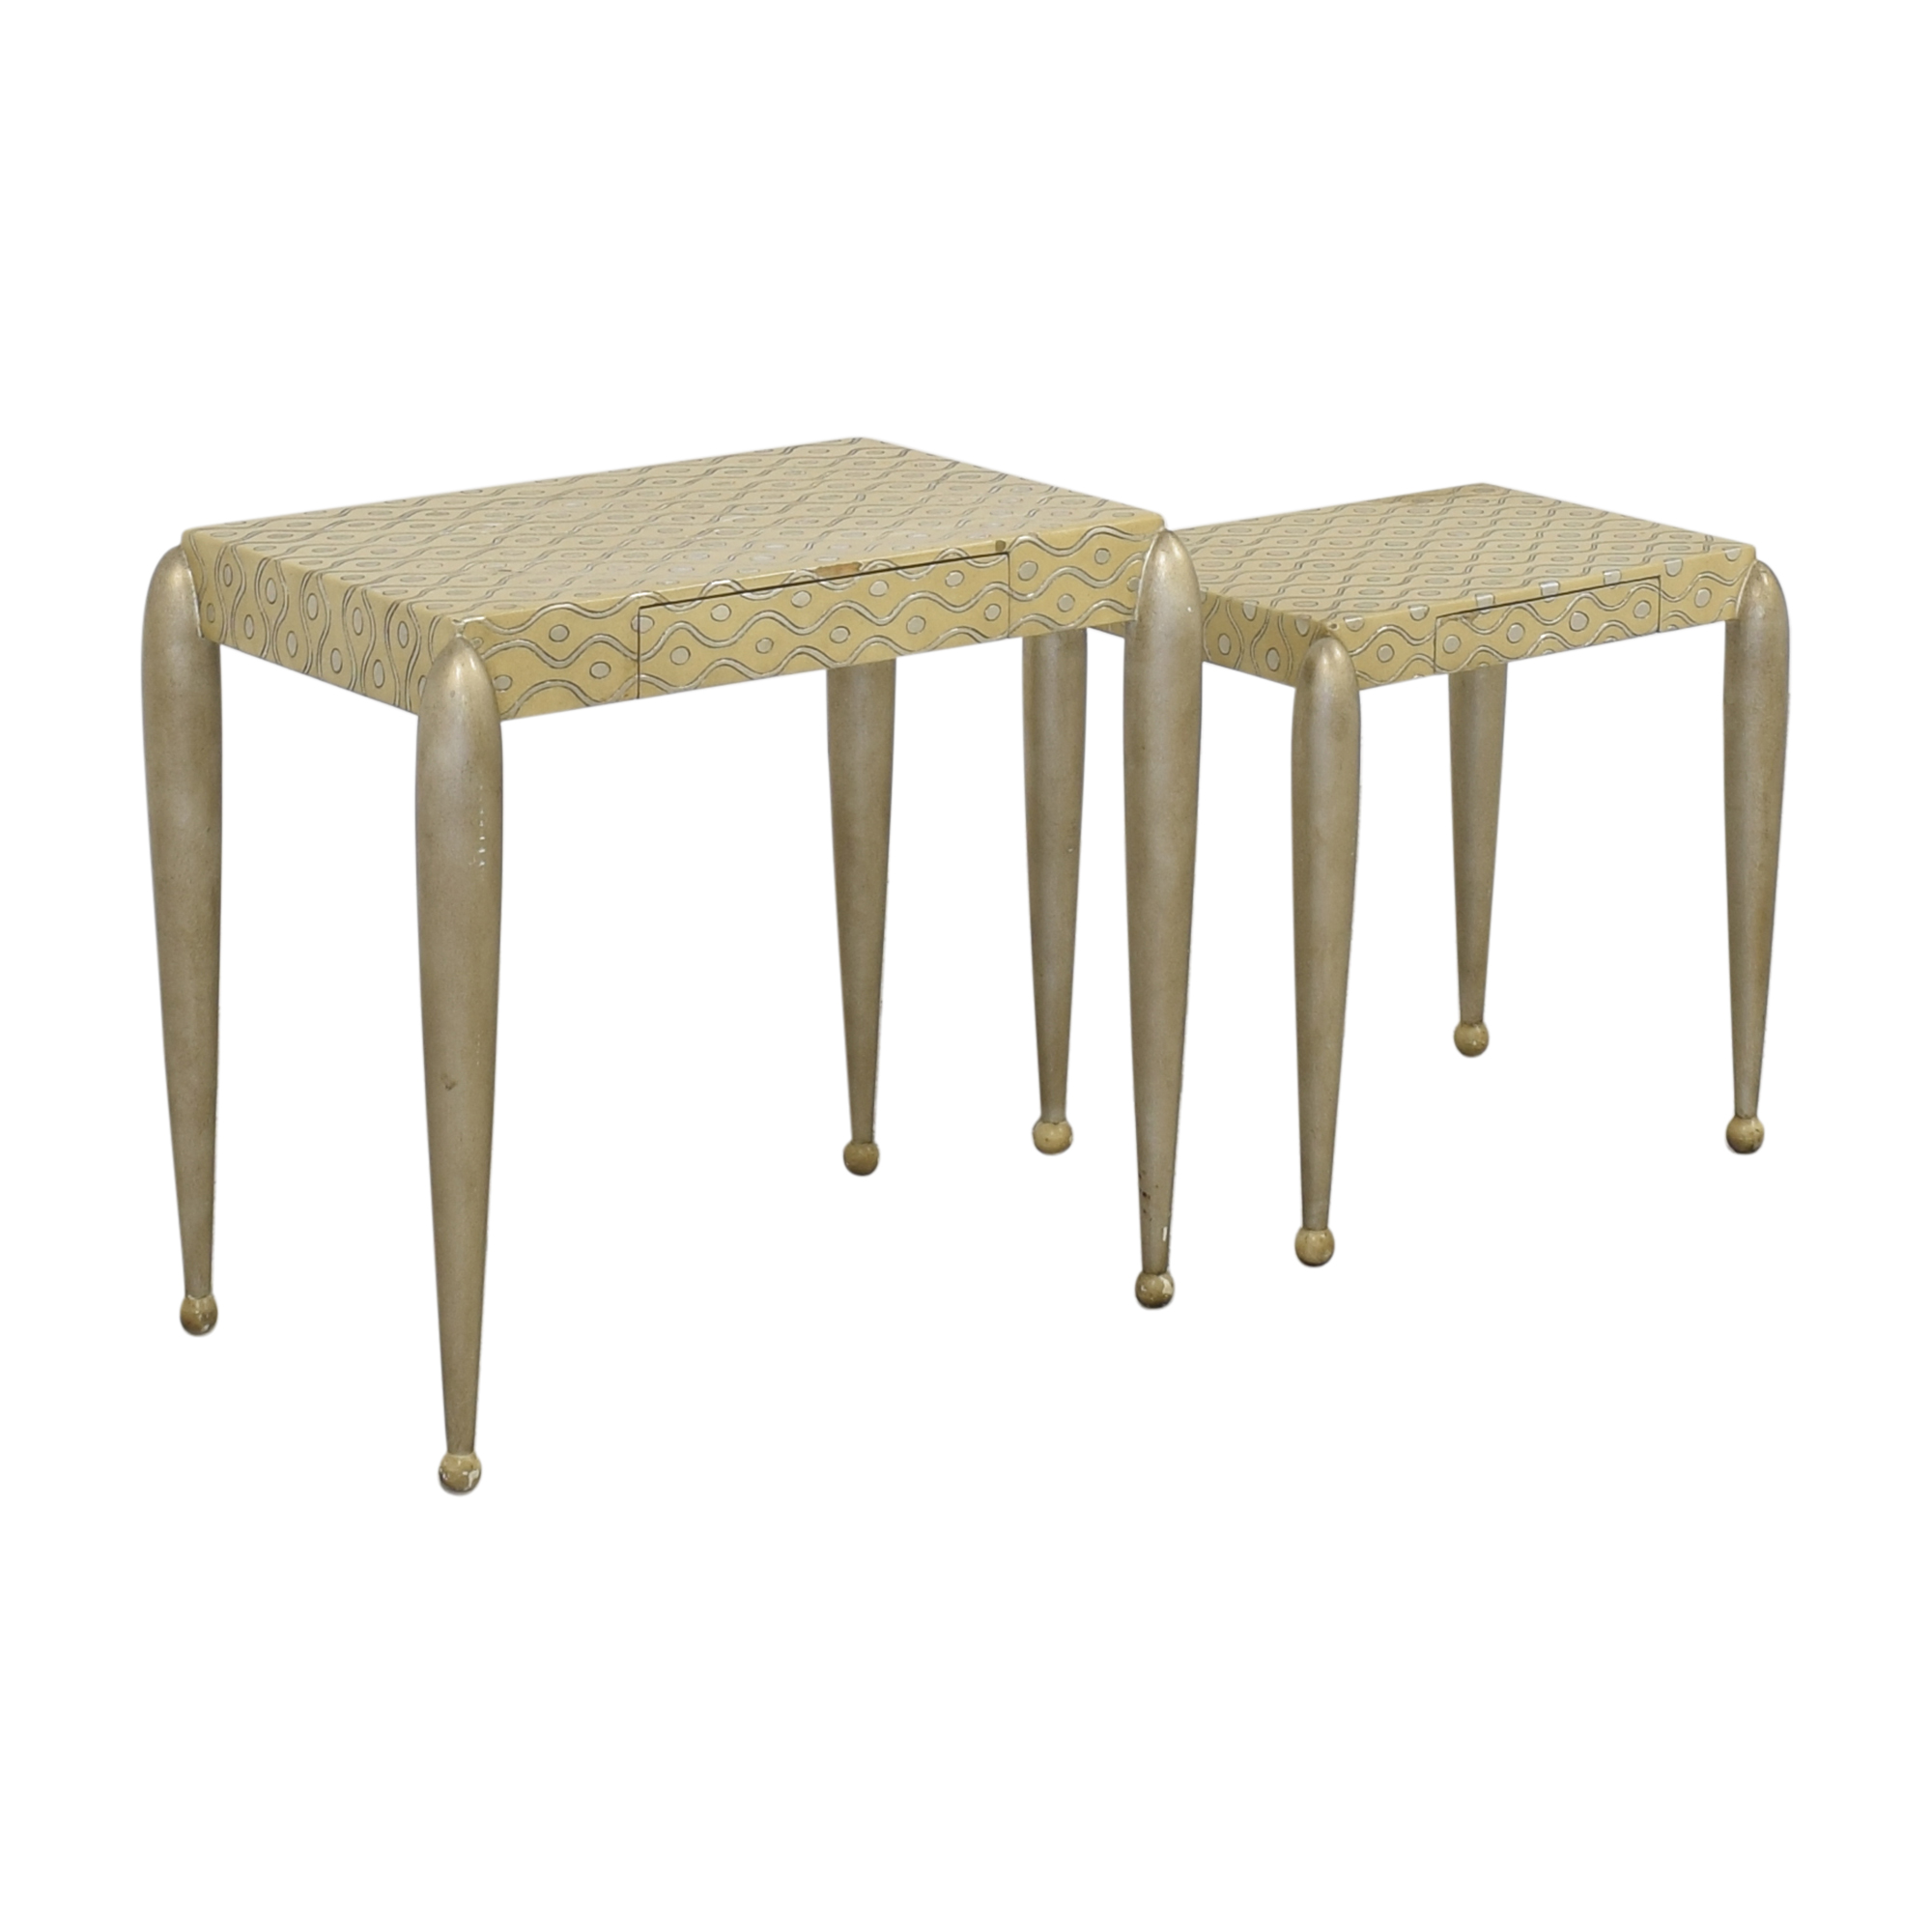 shop ABC Carpet & Home African Inspired Nesting Tables with Drawers online